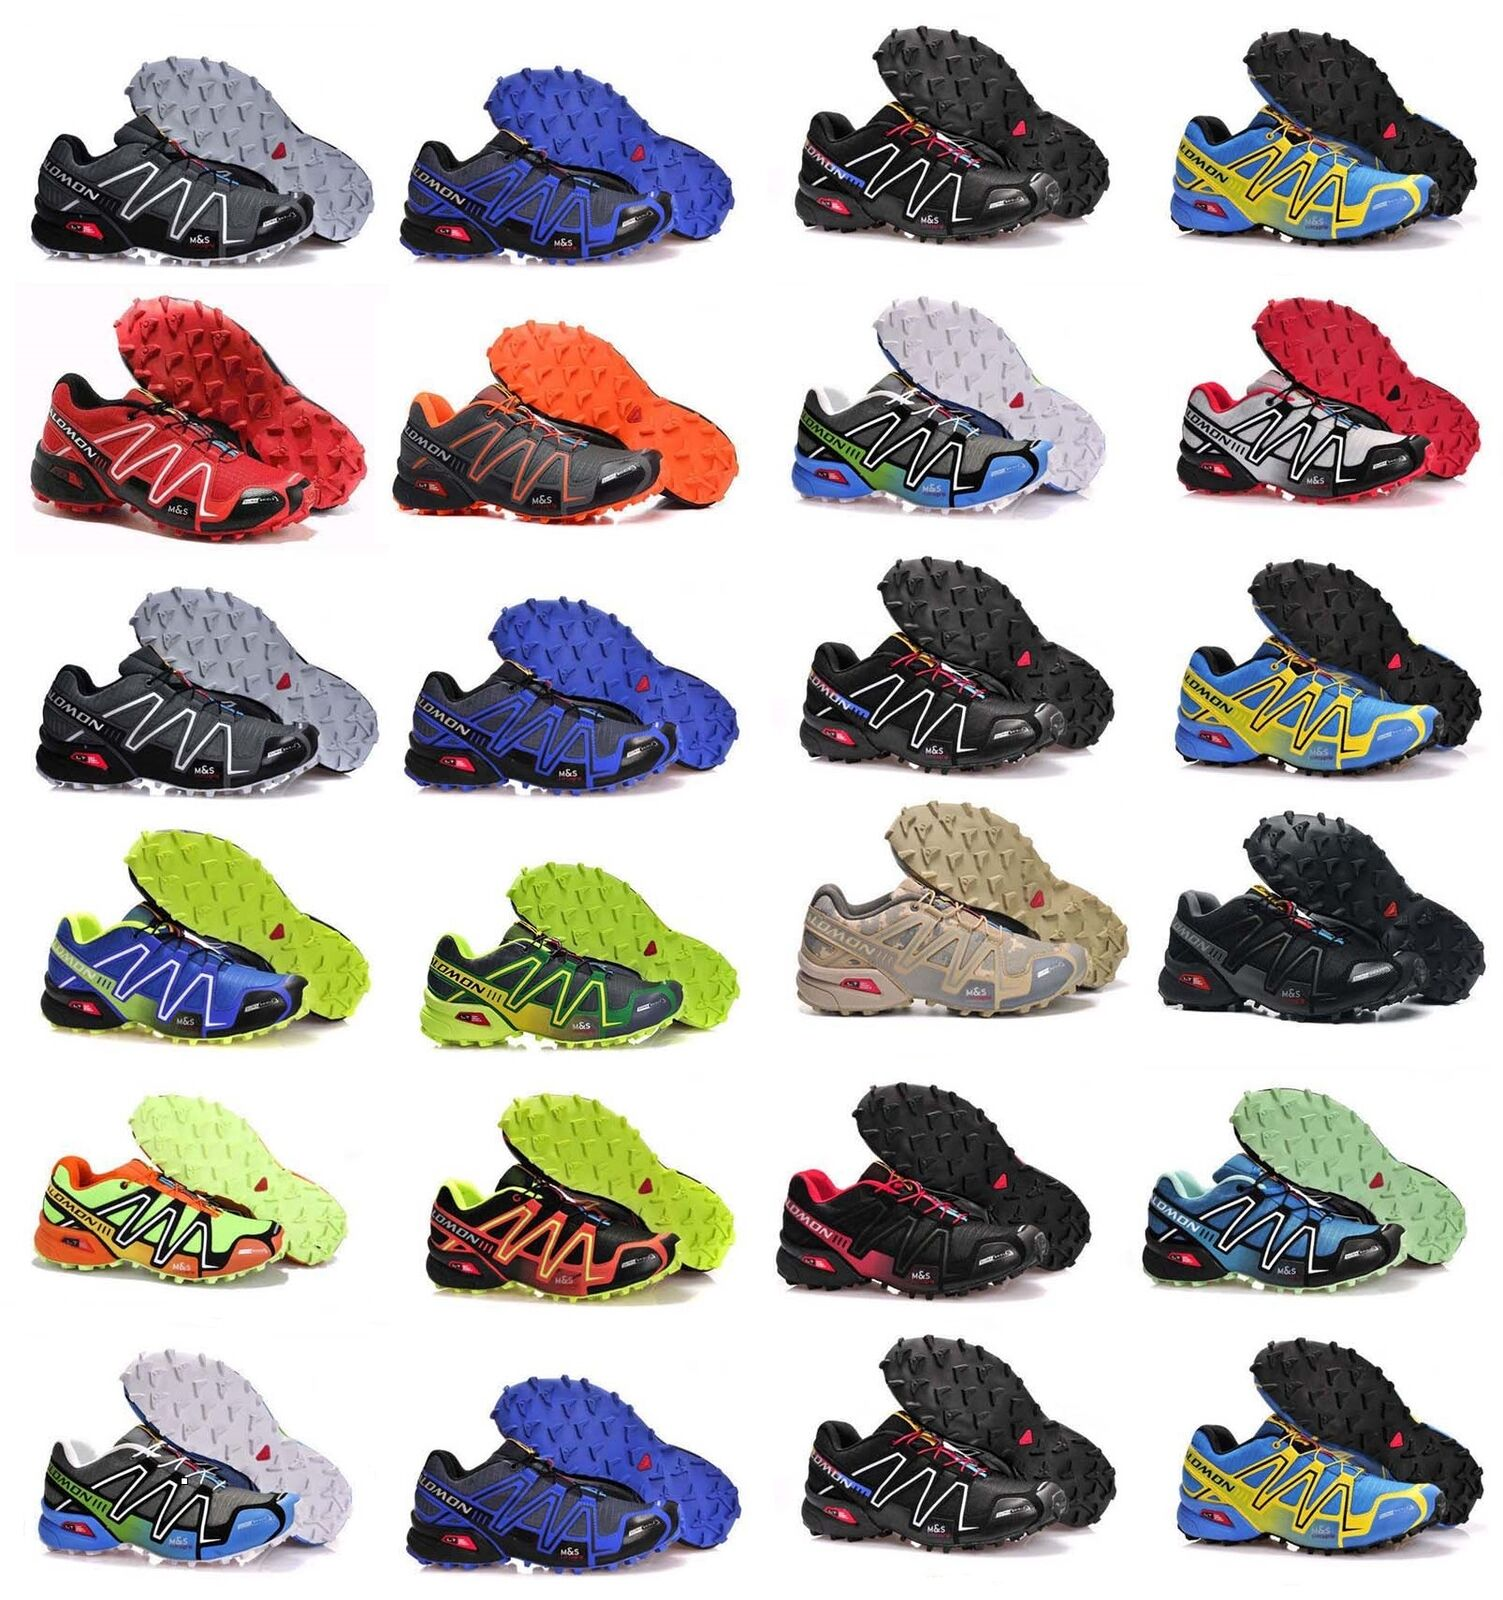 107272 1618 Salomon 390837 Tanacross Sneaker Outdoor WBXwG